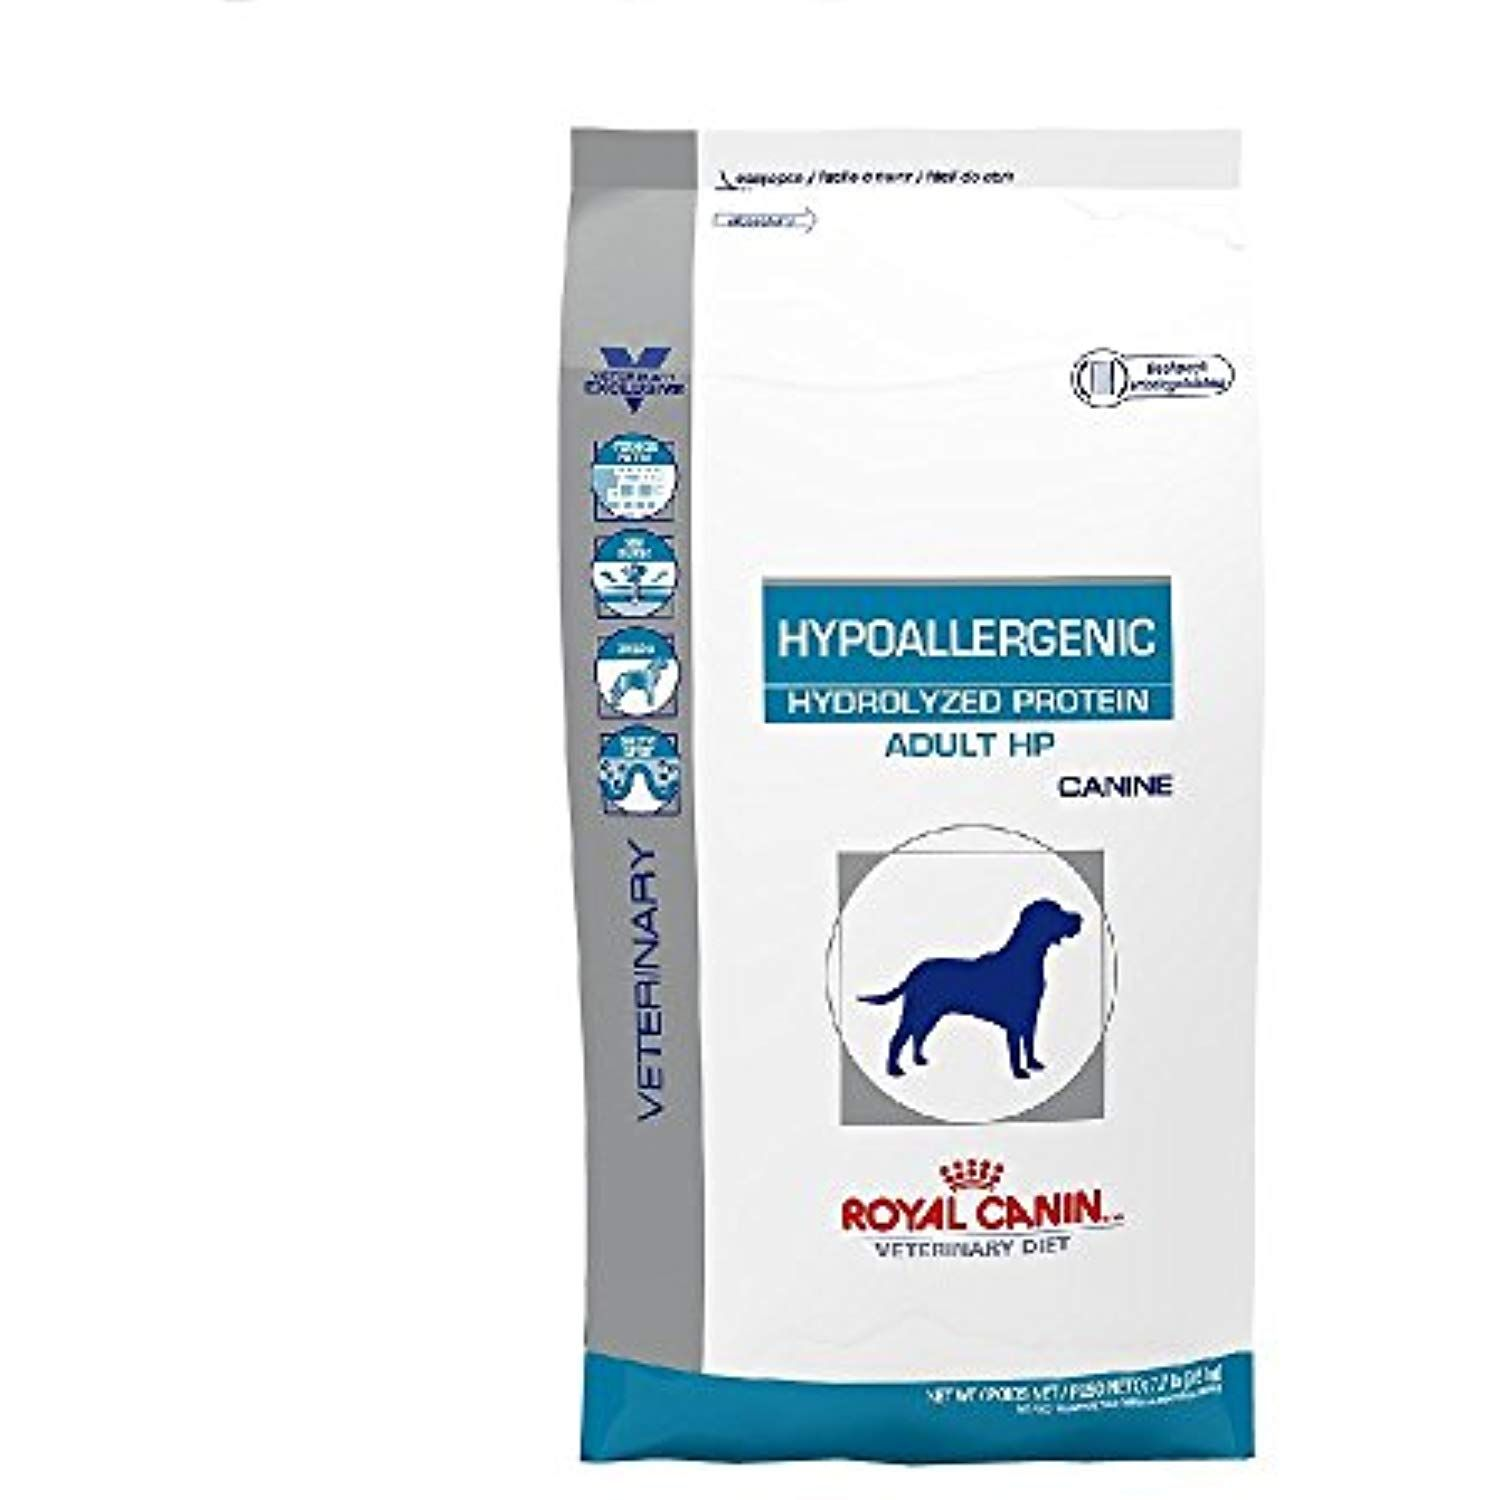 Royal Canin Hypoallergenic Hydrolyzed Protein Dog Food 17 6 Lb You Can Get Additional Details At The Im Hydrolyzed Protein Dog Food Recipes Canned Dog Food